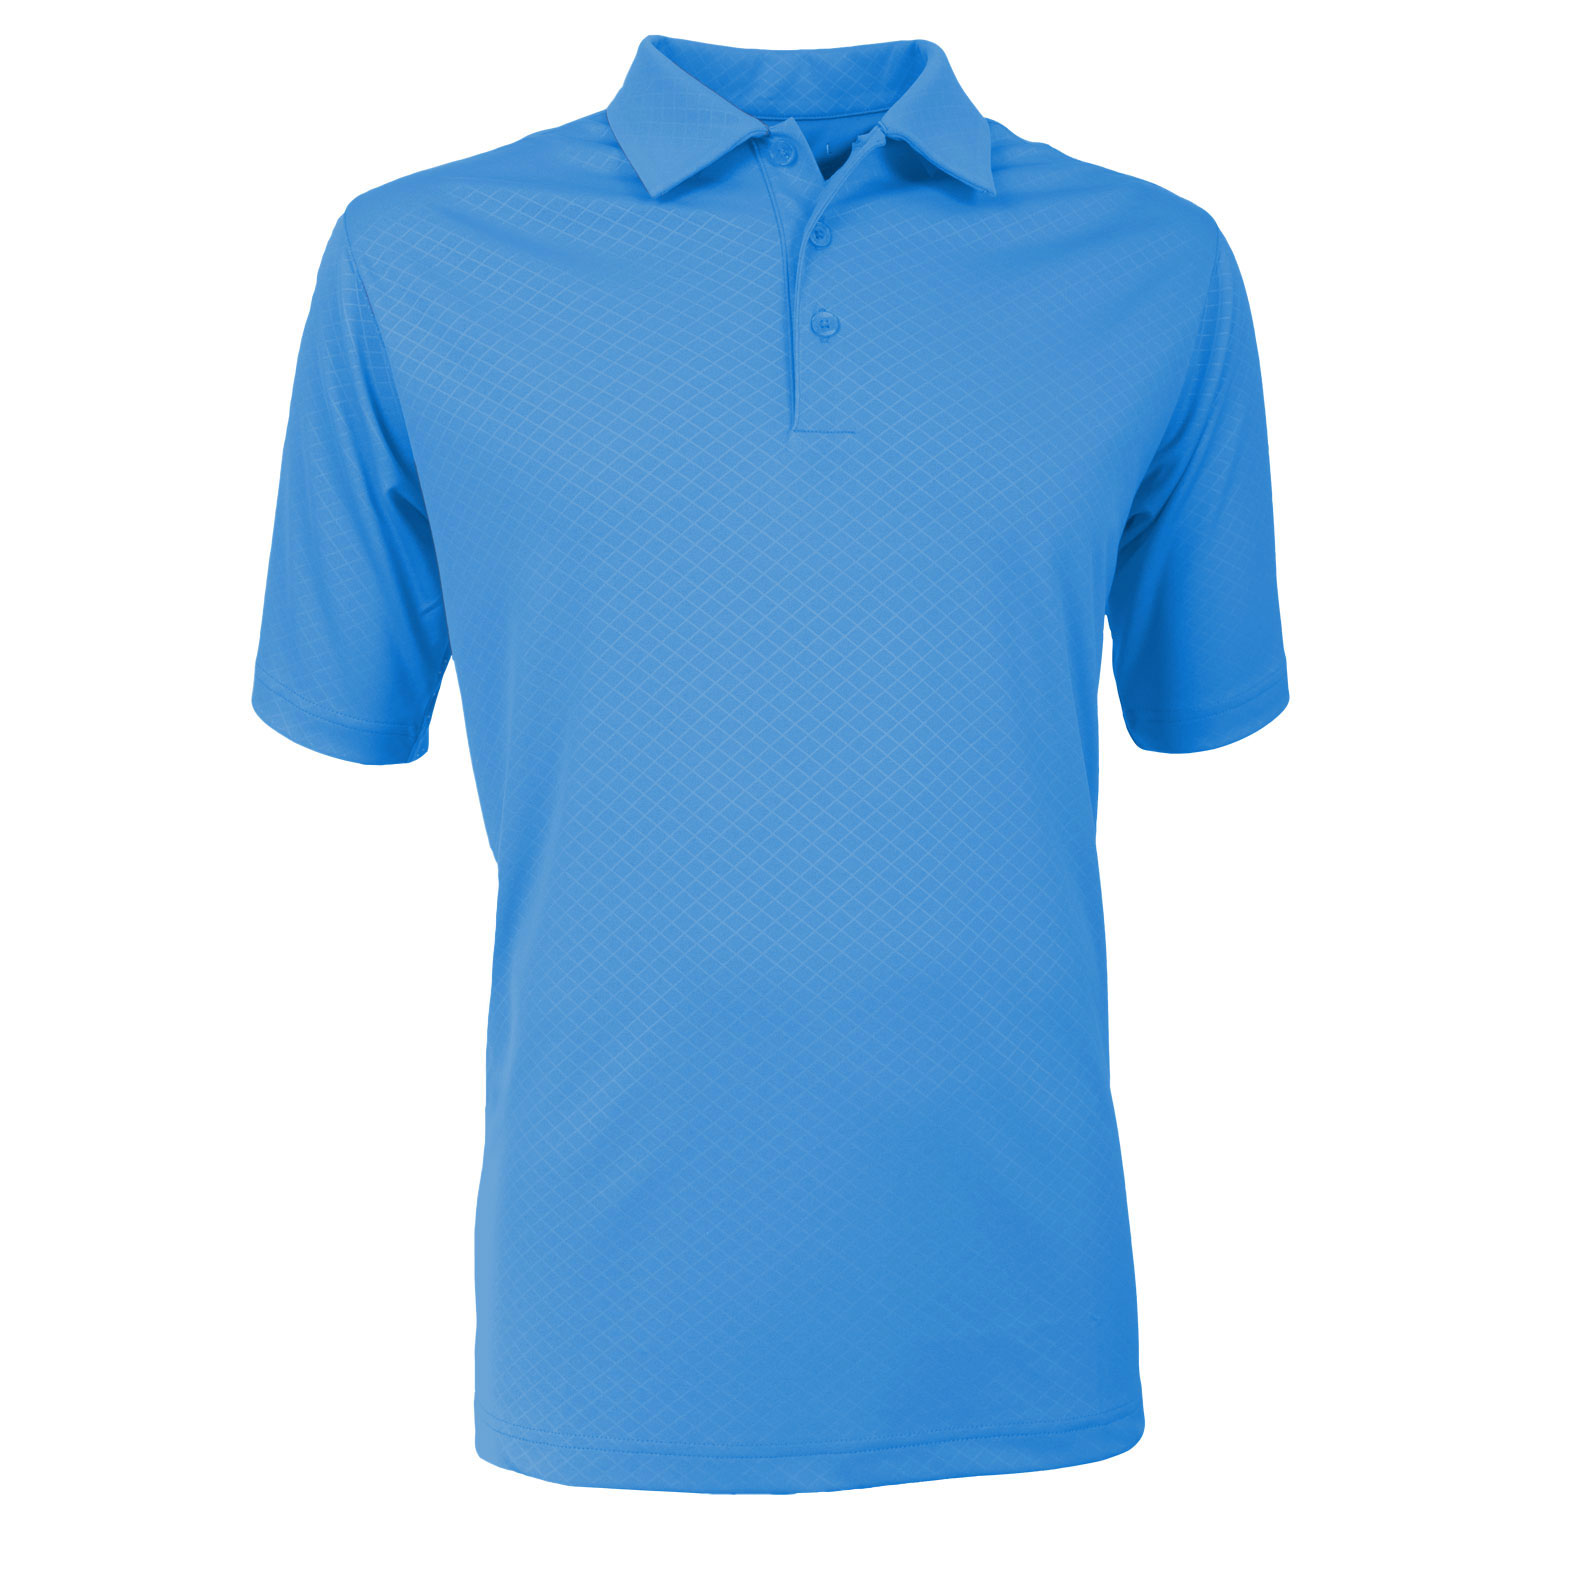 Antigua Mens Inspire Polo